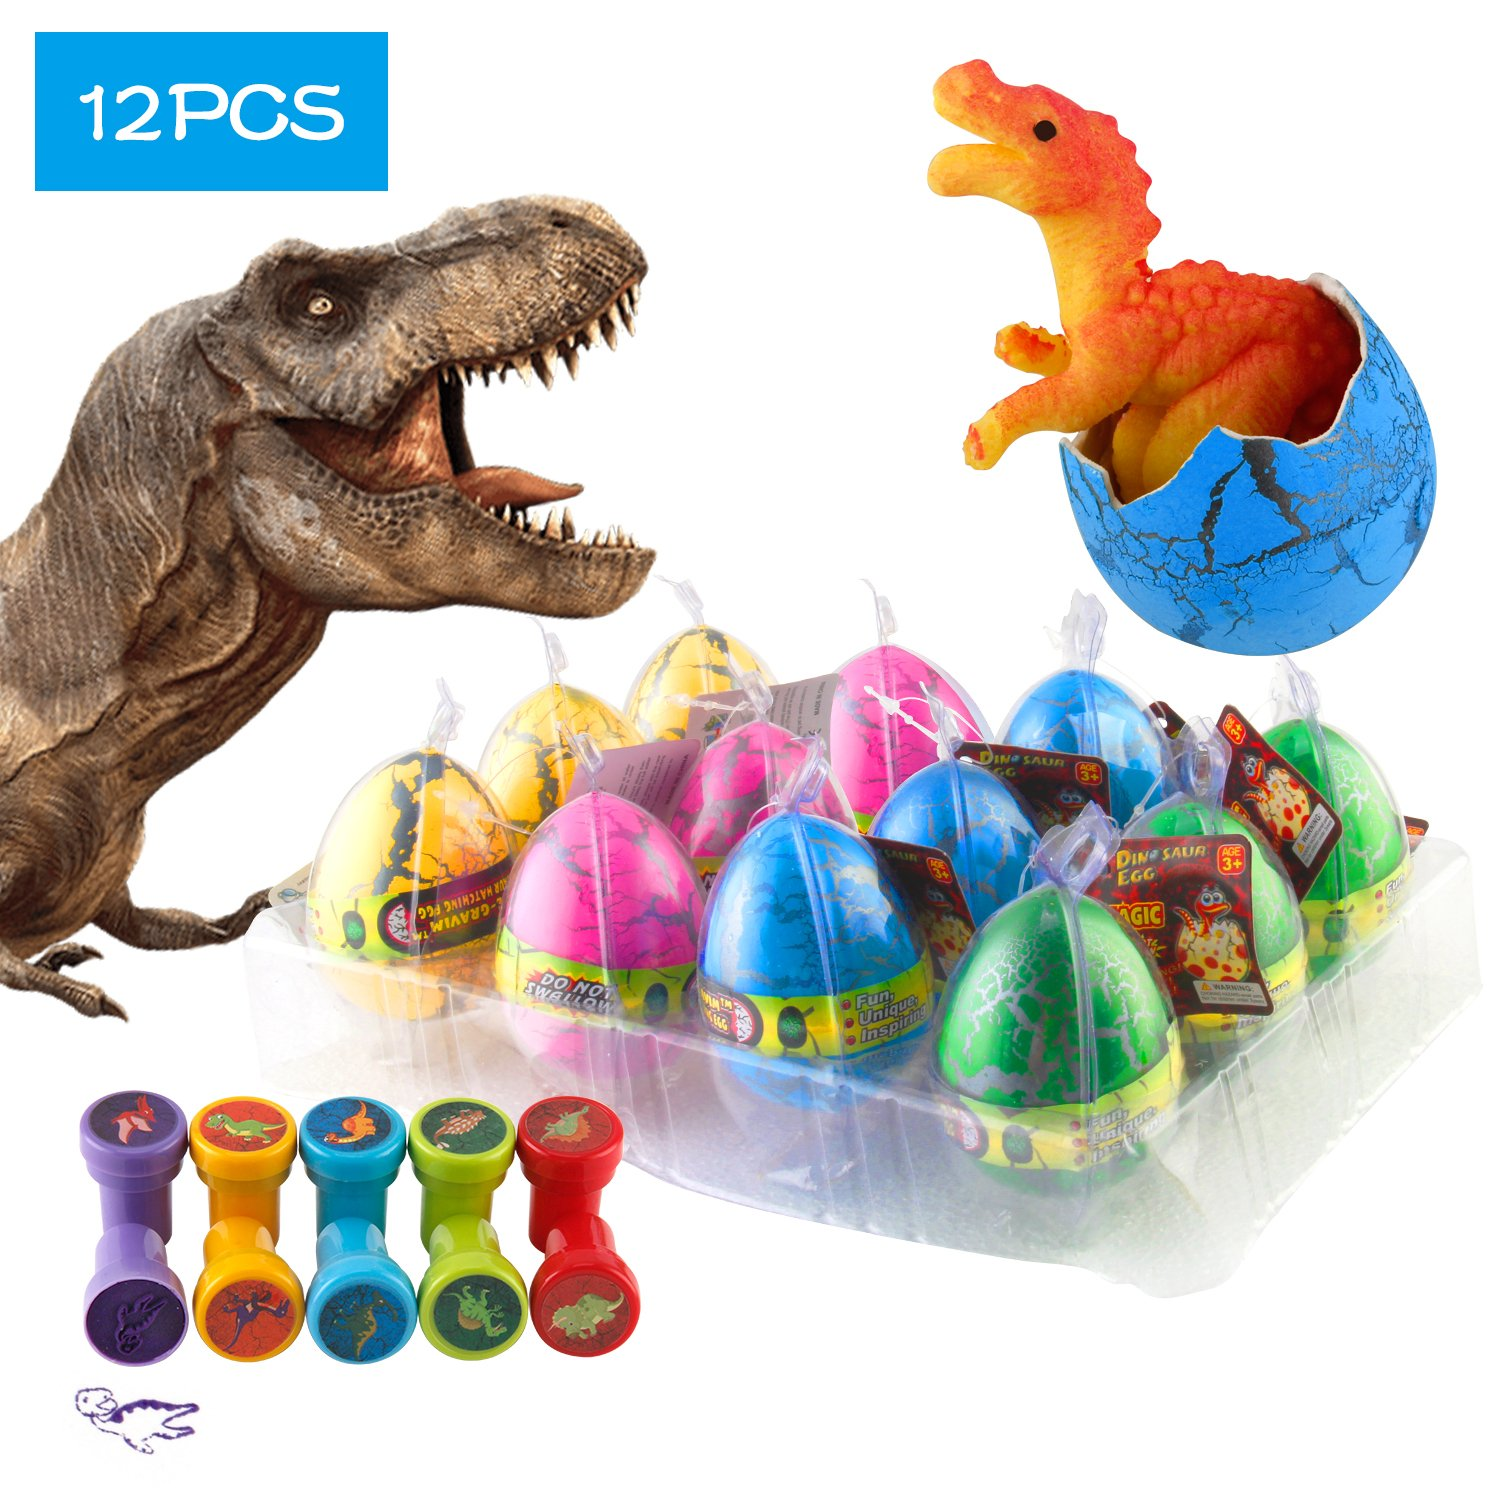 Amazon 12 Pcs Dinosaur Eggs with Bonus10 Pcs Dinosaur Stamps